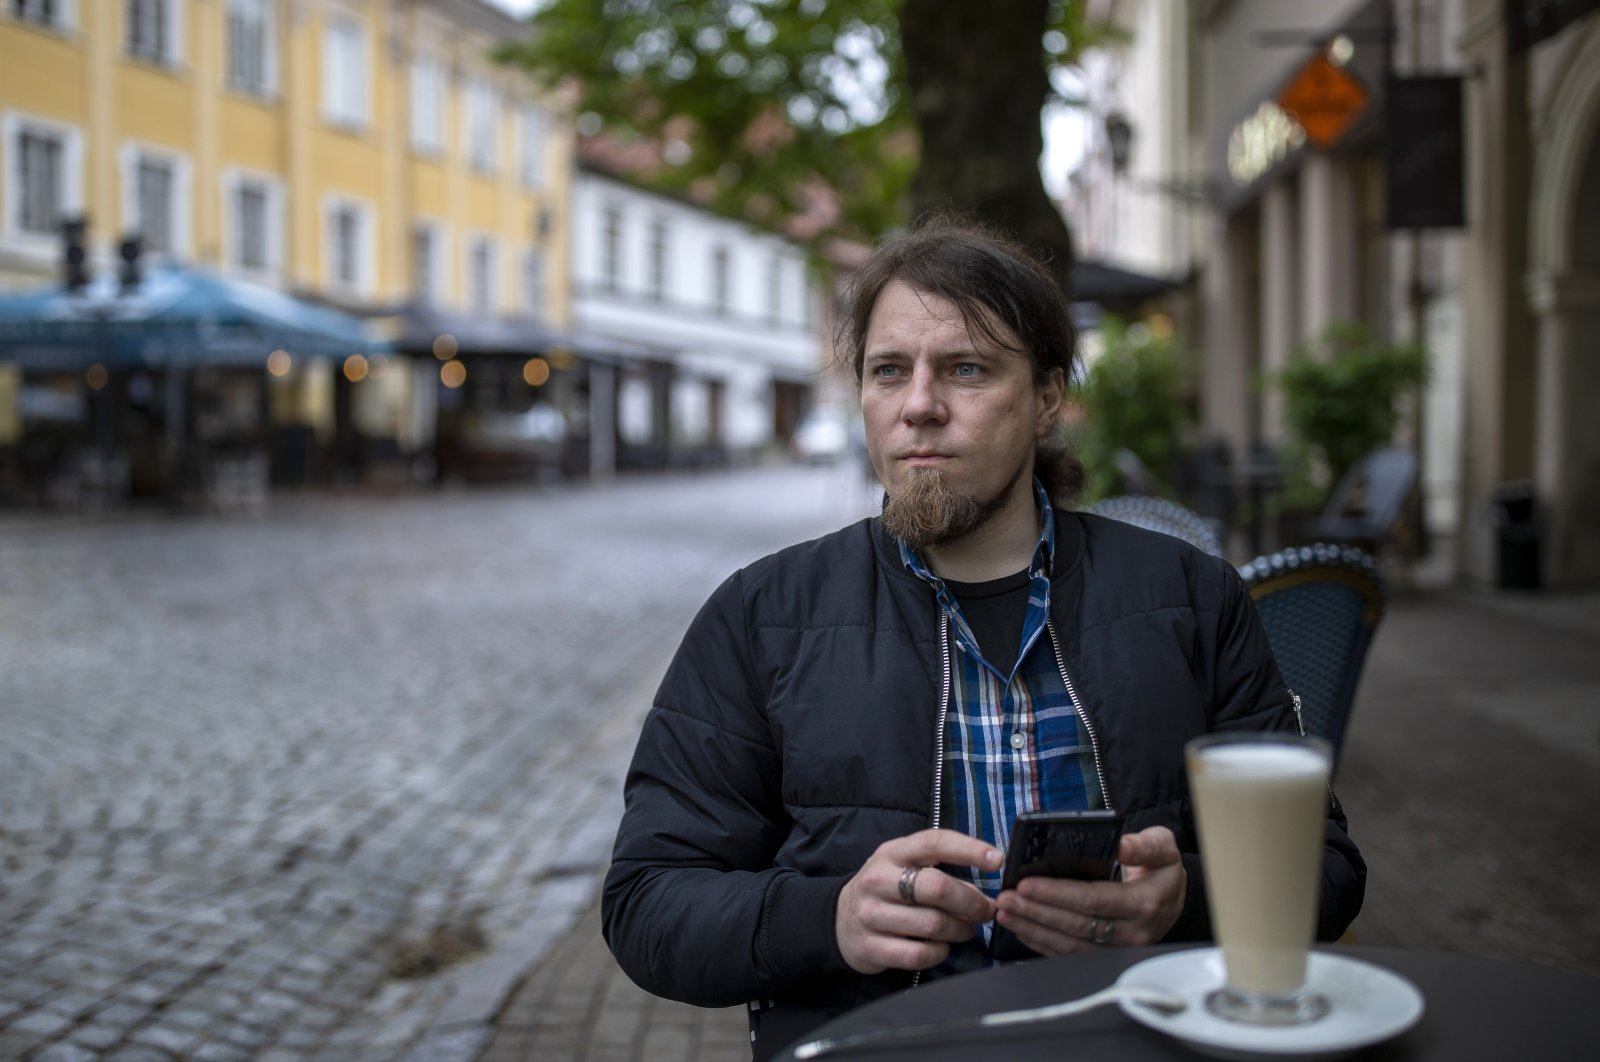 Viachka Krasulin, who fled Belarus after police arrested and beat him during demonstrations against authoritarian President Alexander Lukashenko in August 2020, sits at a cafe in Vilnius, Lithuania, May 19, 2021. (AP Photo)